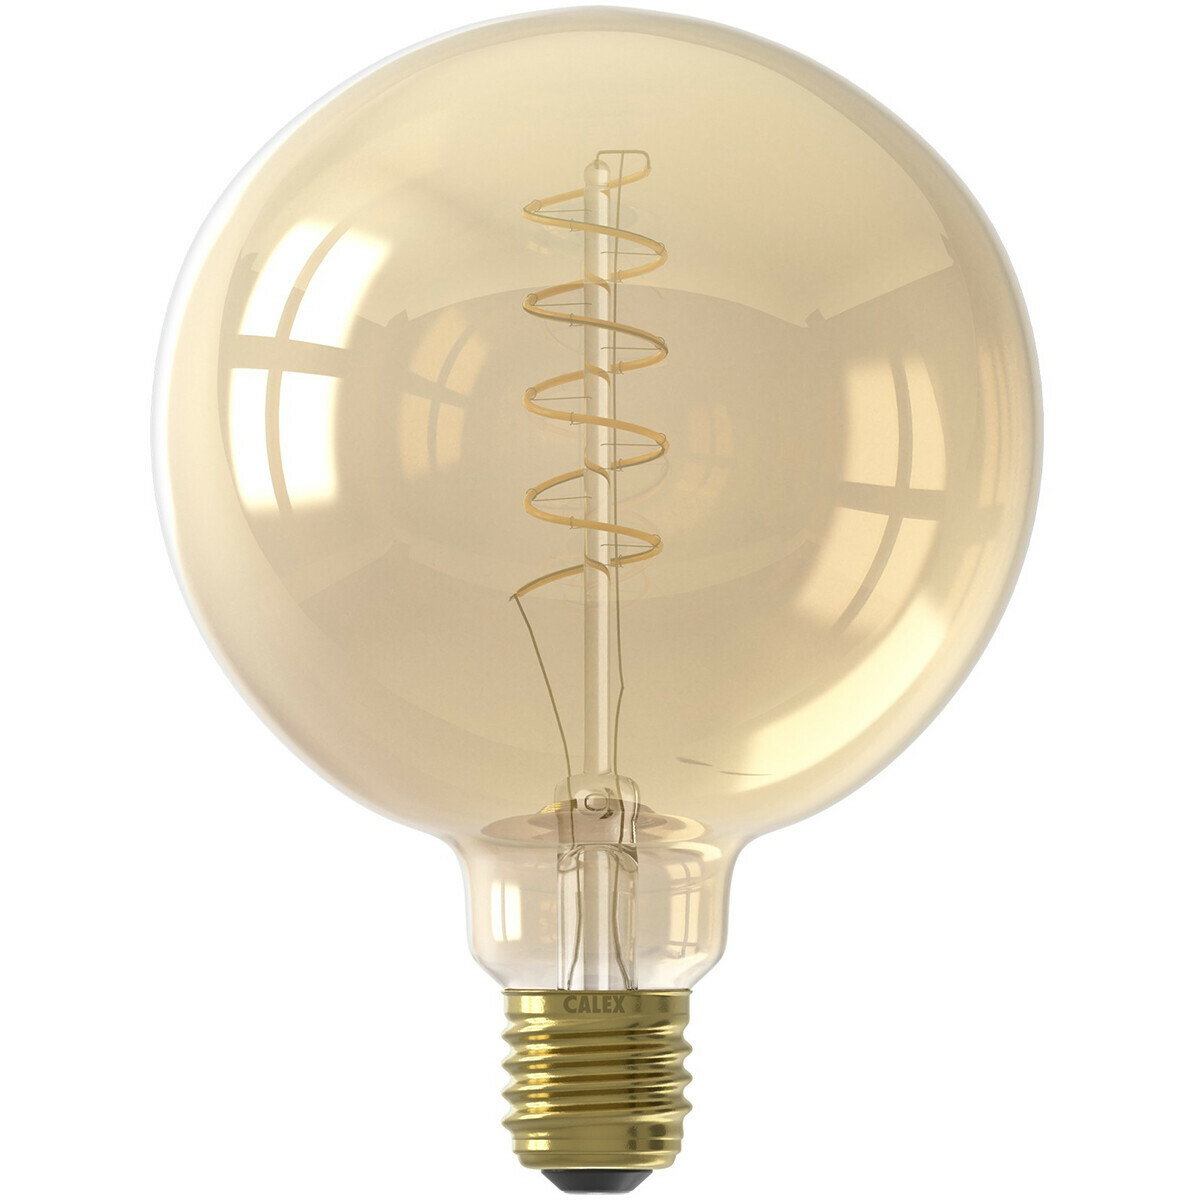 Calex Led Lamp Globe Filament G125 E27 Fitting Dimbaar 4w Warm Wit 2100k Amber Bes Led